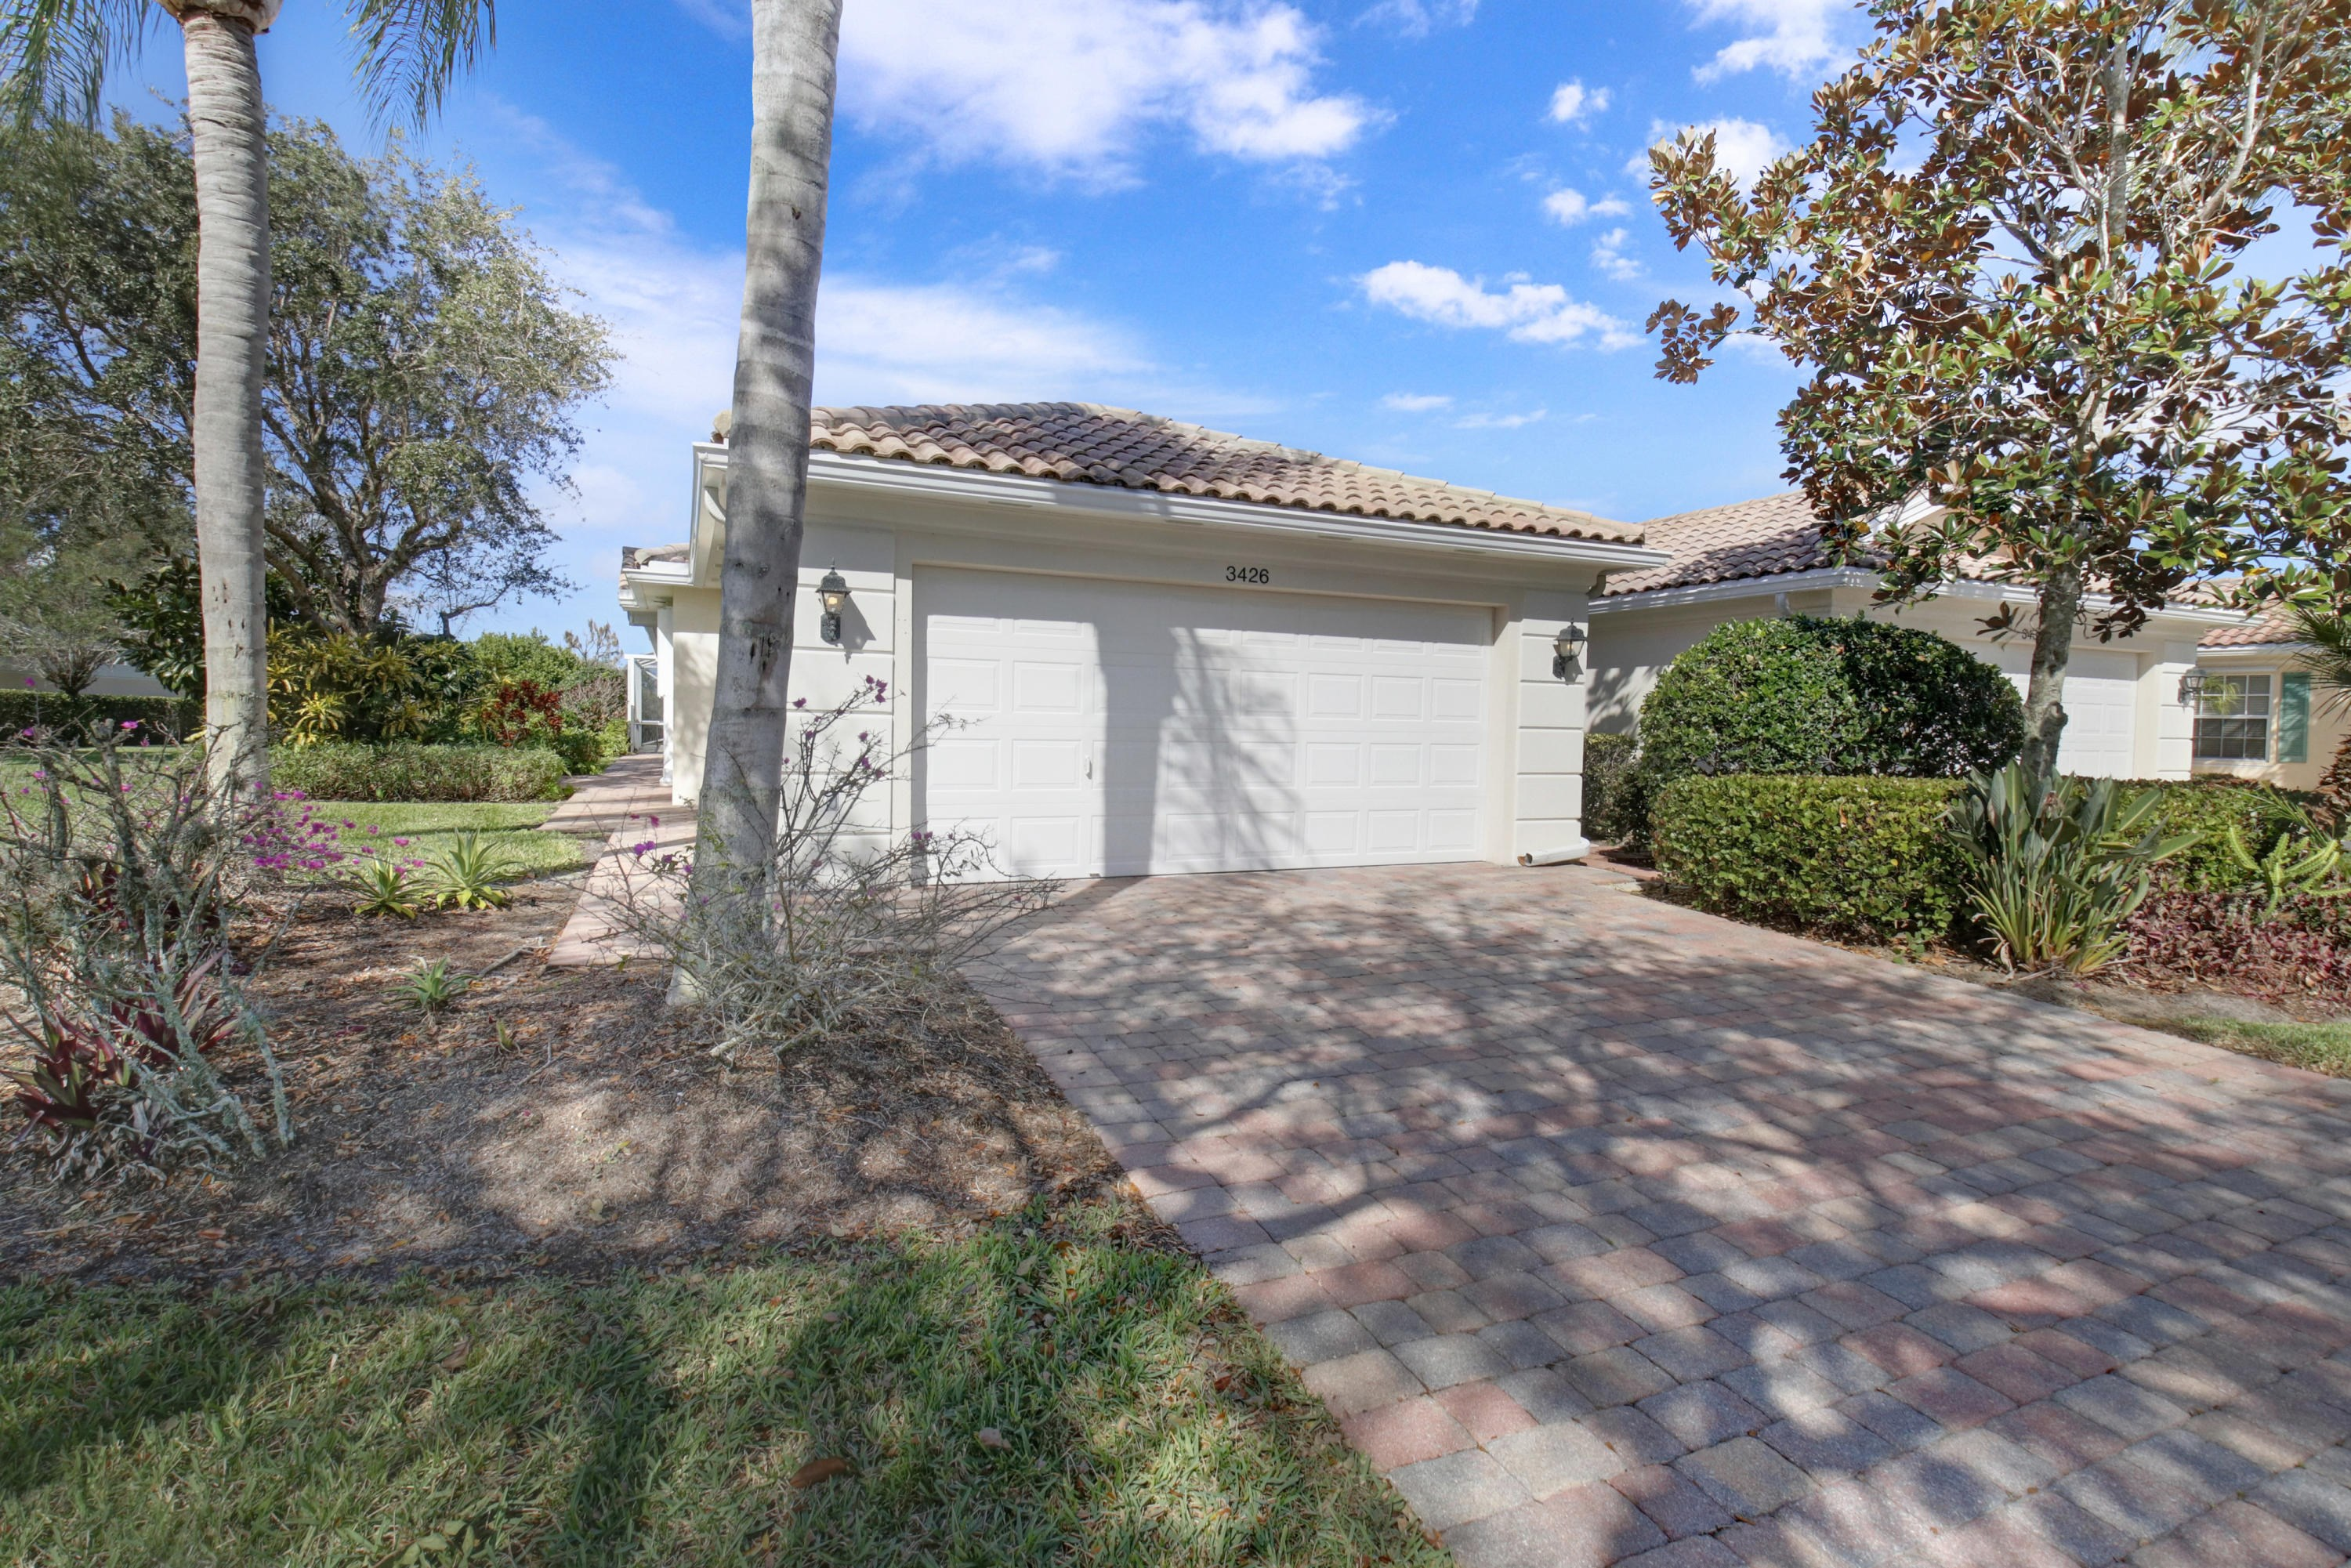 3426 SE Glacier Terrace, Hobe Sound, Florida